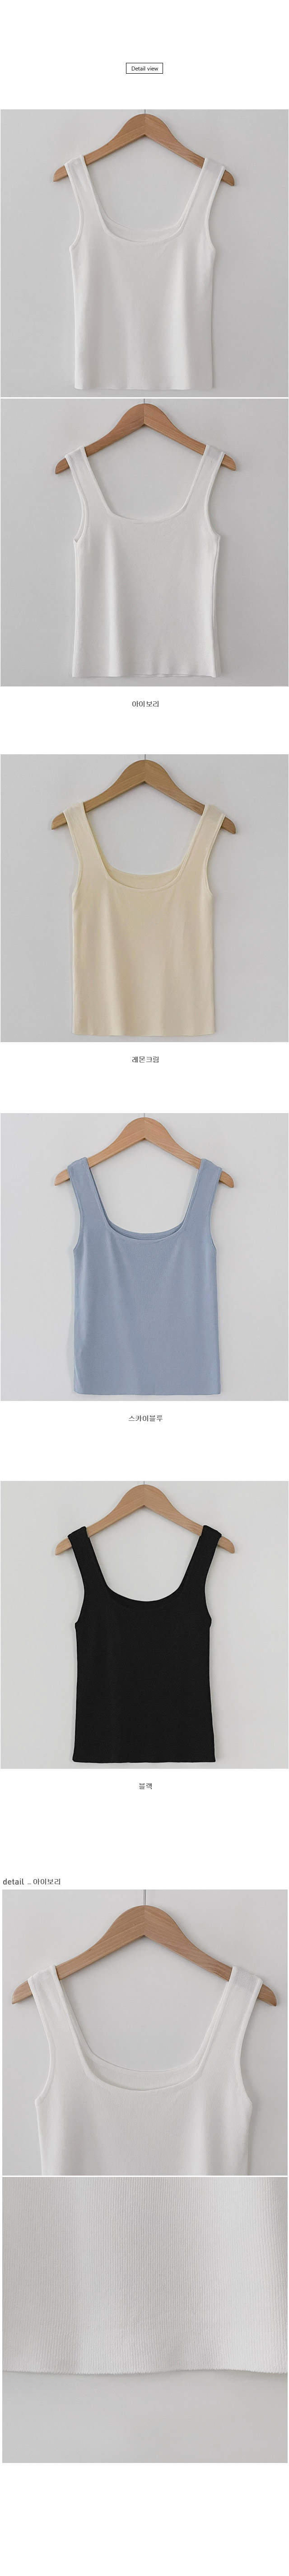 Darby Square Neck Knitwear Sleeveless